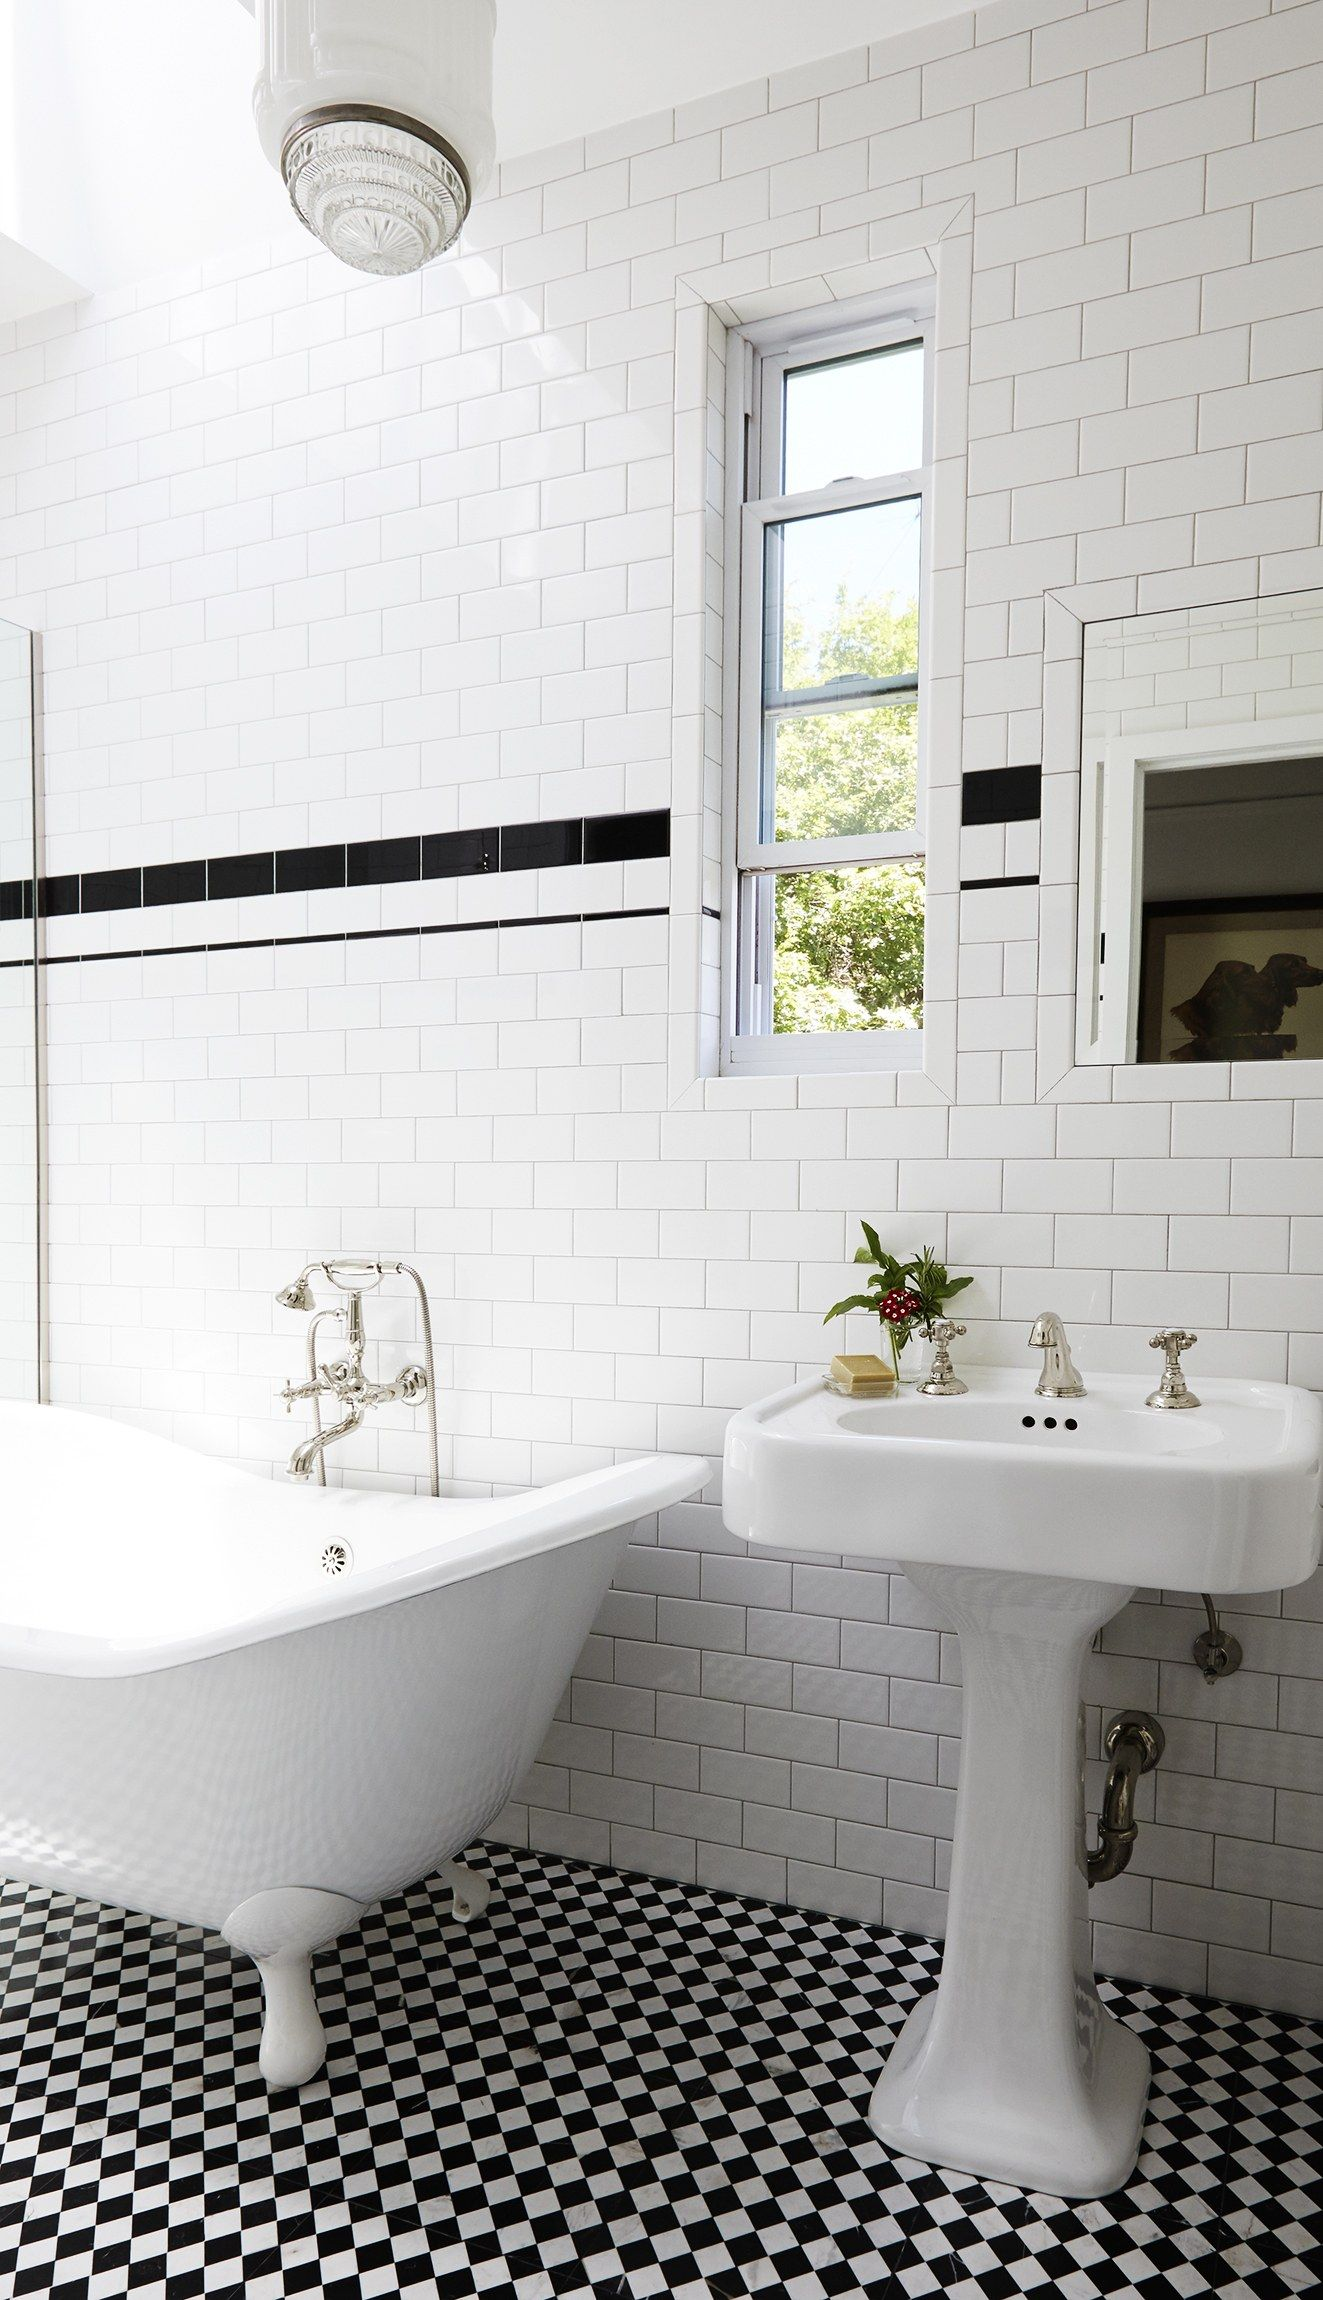 Bathroom with black and white tiled floors